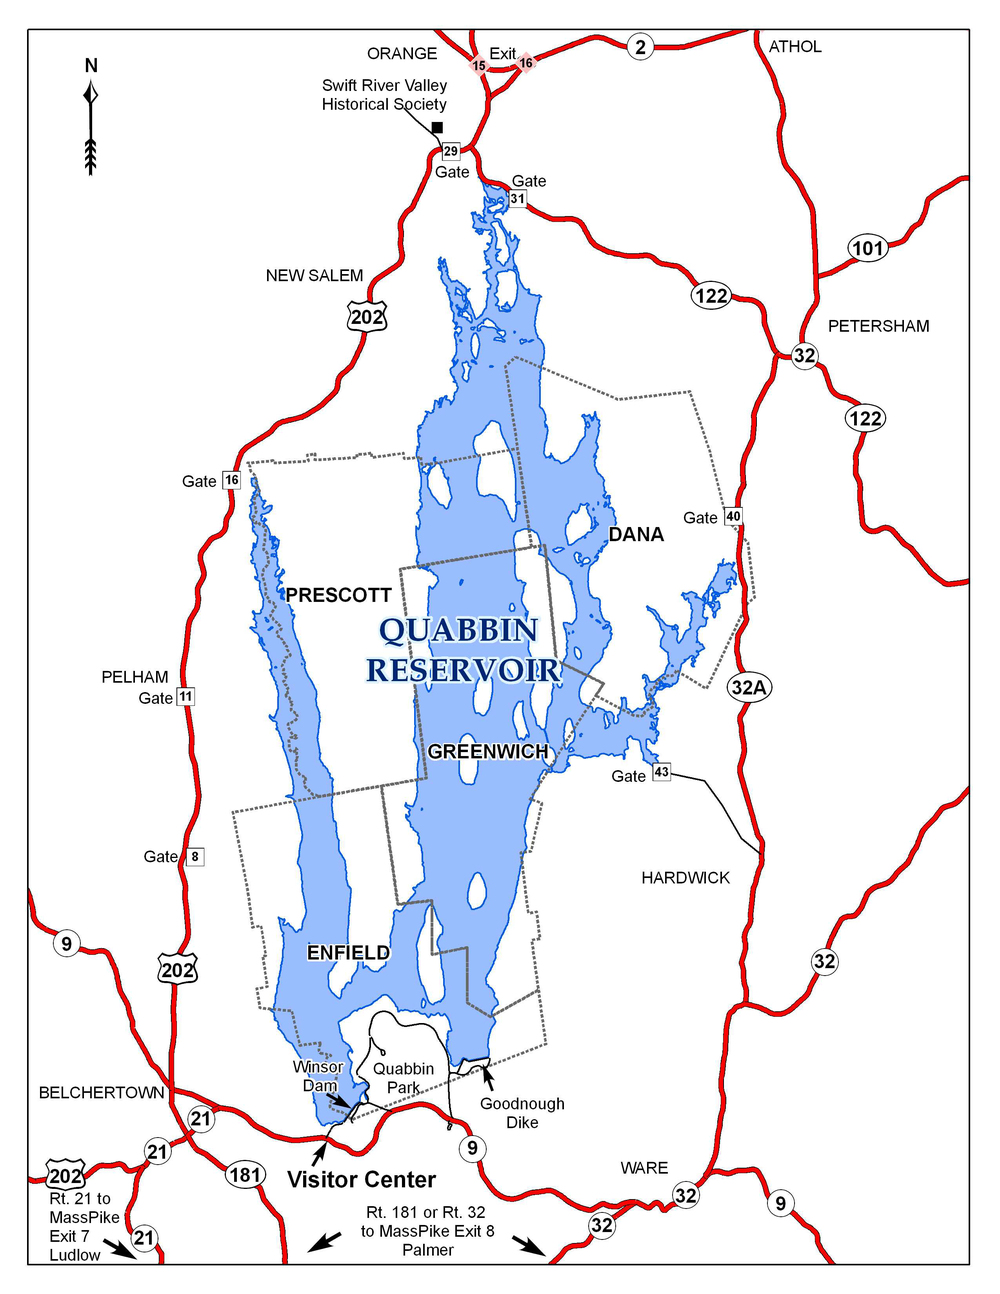 Call the Quabbin Visitor Center at 413-323-7221 for more info about the Quabbin, including rules. Copy and past the following URL to your browser to  view a short film about Quabbin I was involved in when I worked as an interpreter there at the Visitor Center.   https://www.youtube.com/watch?v=CE4Q5LOK2ec